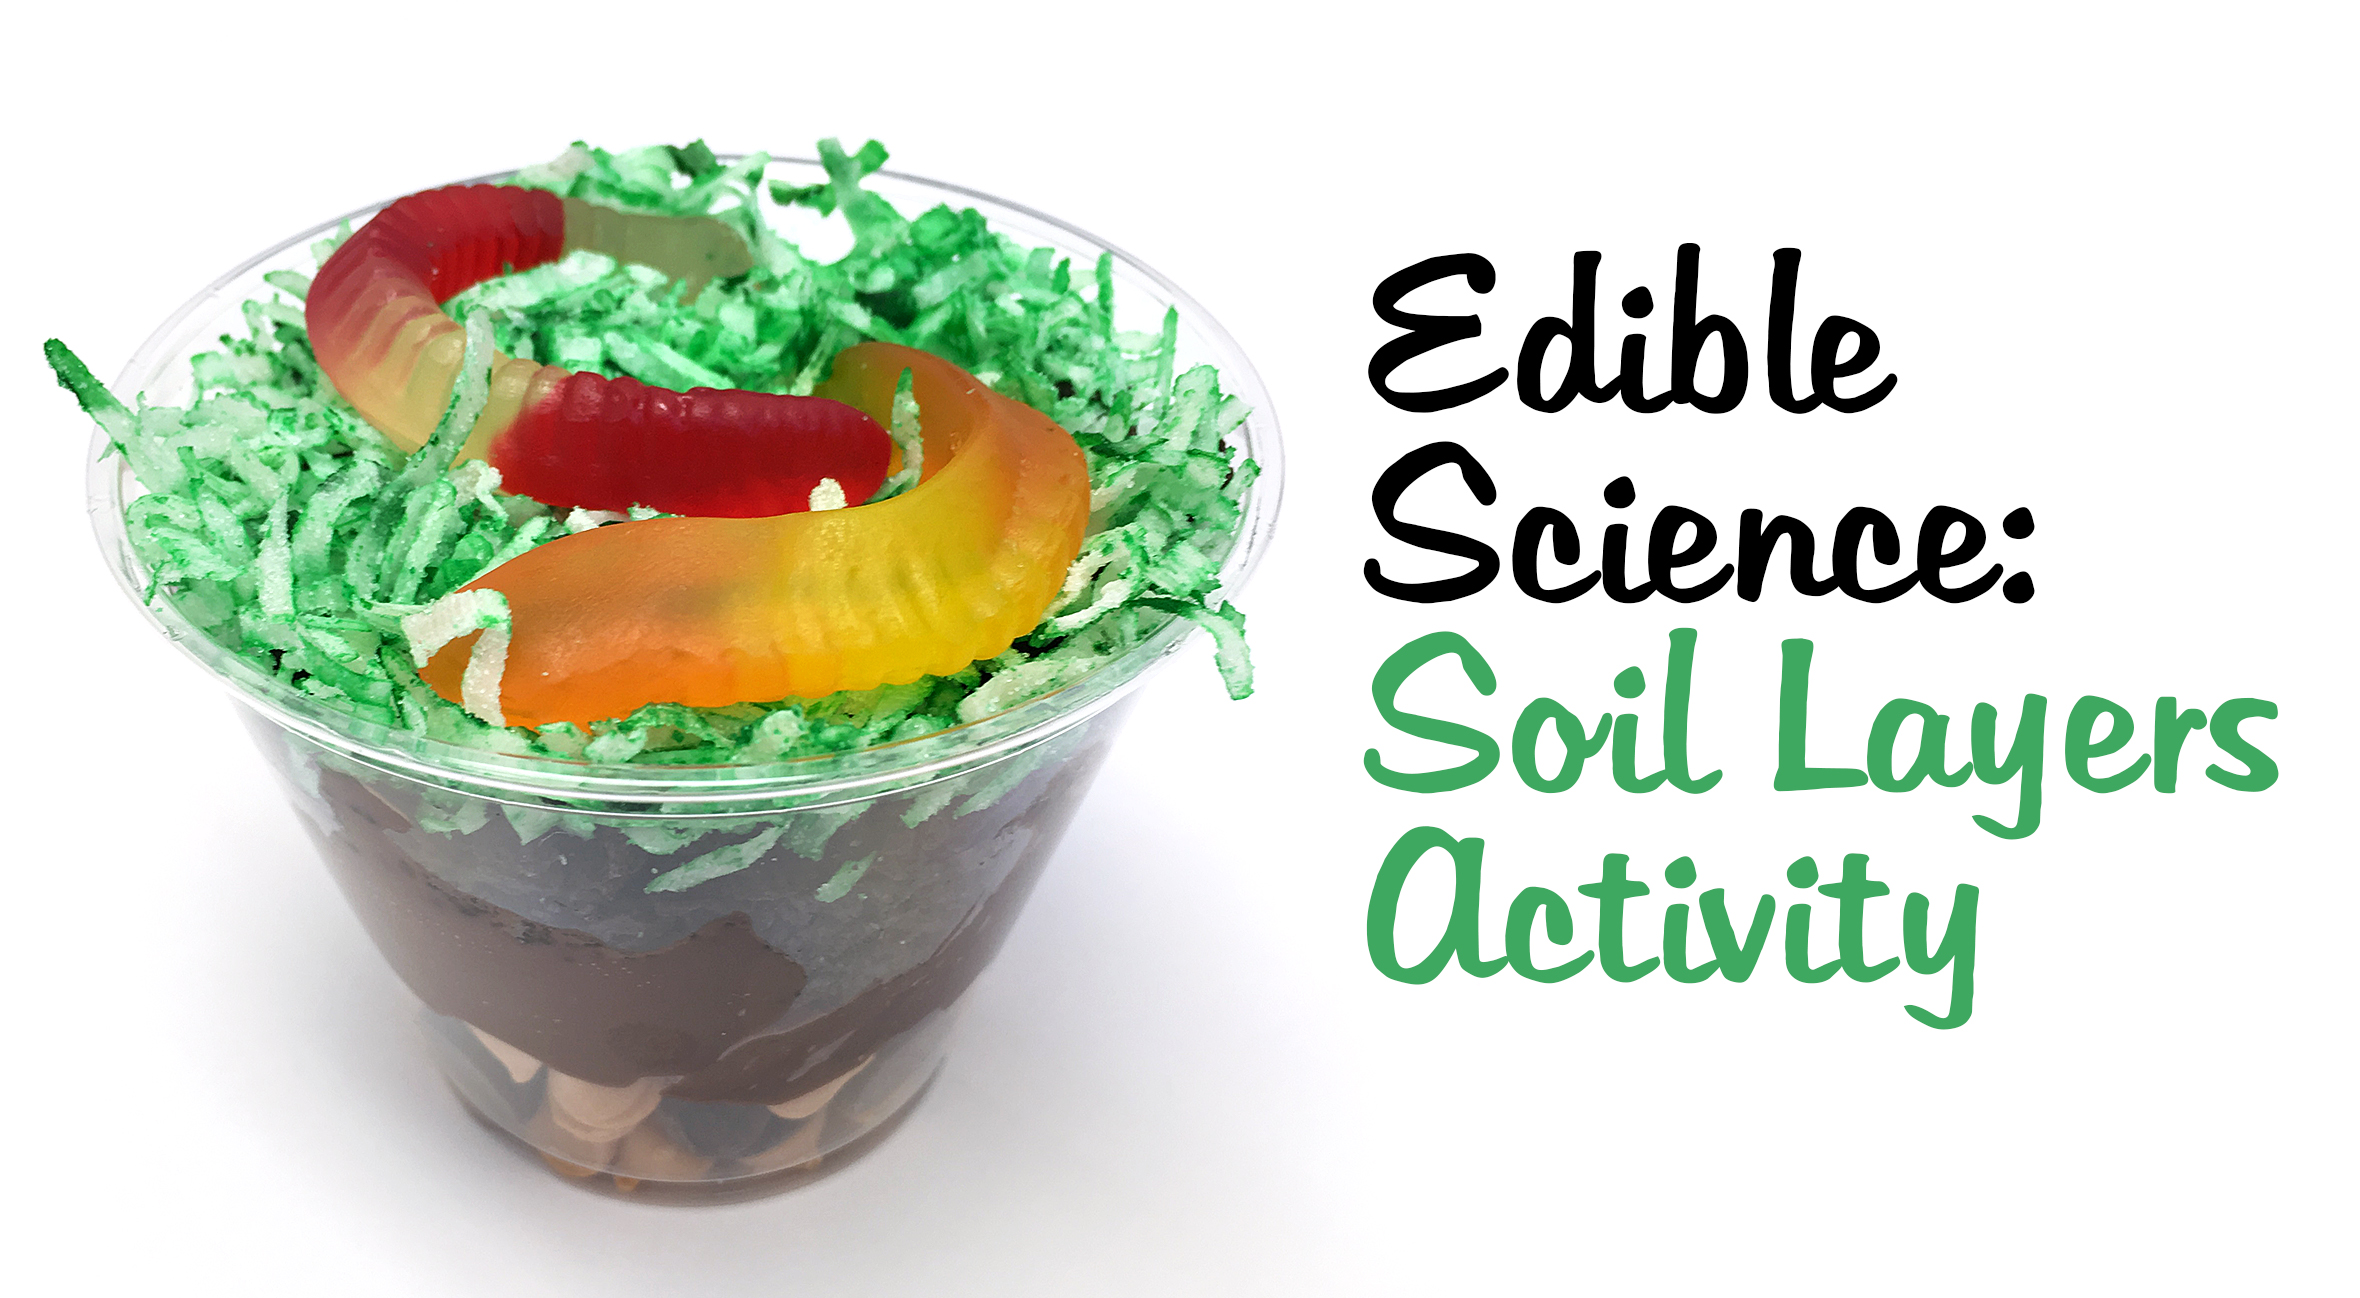 worksheet Soil Layers Worksheet superteacherworksheets blog your students will love making this educational version of the classic worms and dirt snack use activity alongside a lesson on layers soil